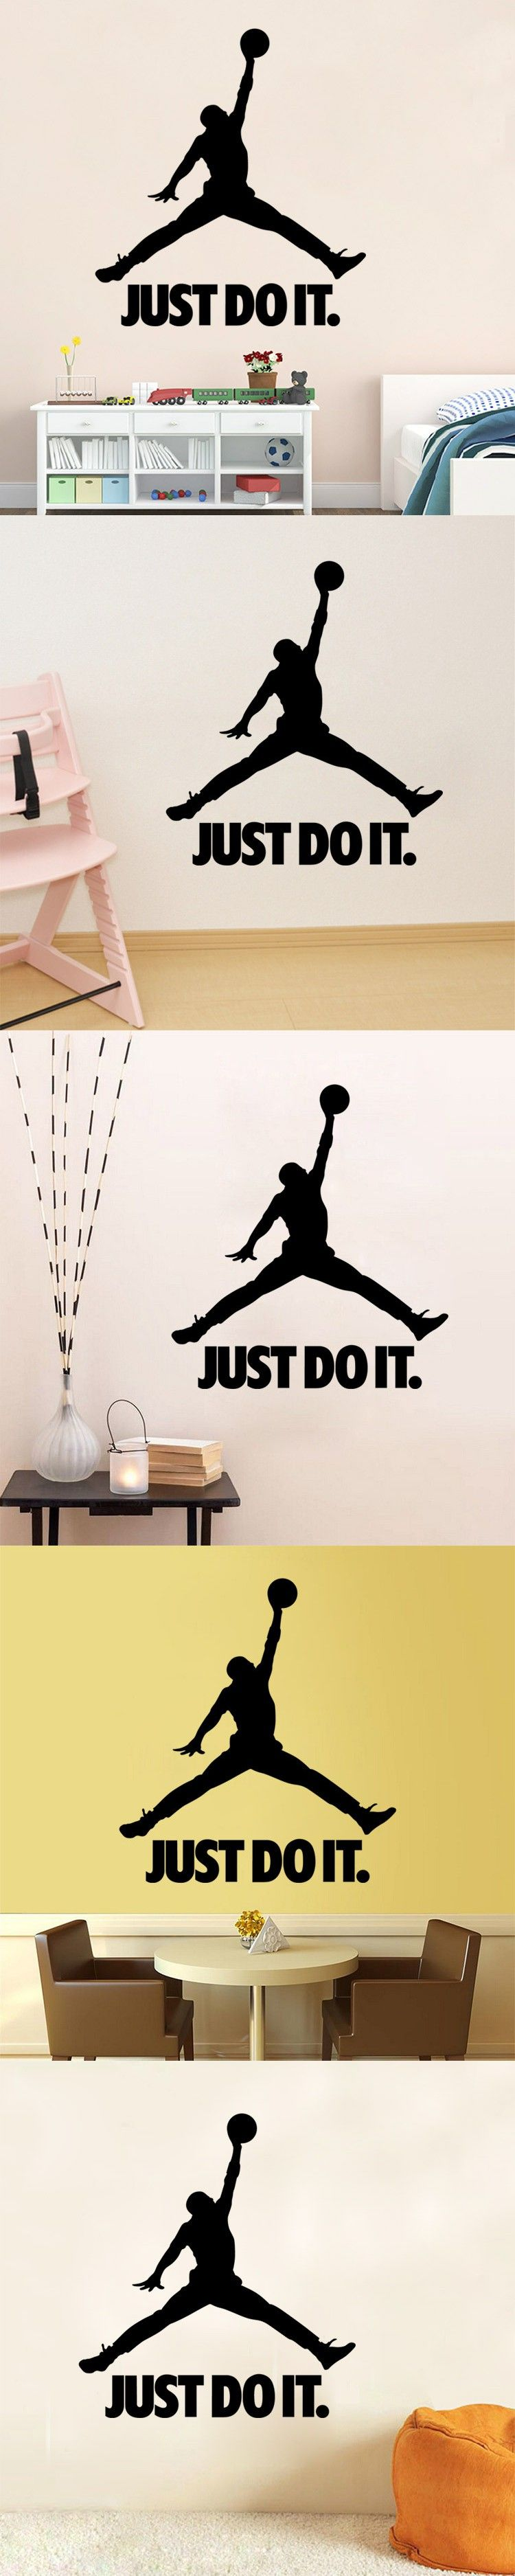 9334 Michael Jordan Basketball Player Wall Stickers For Kids Room ...